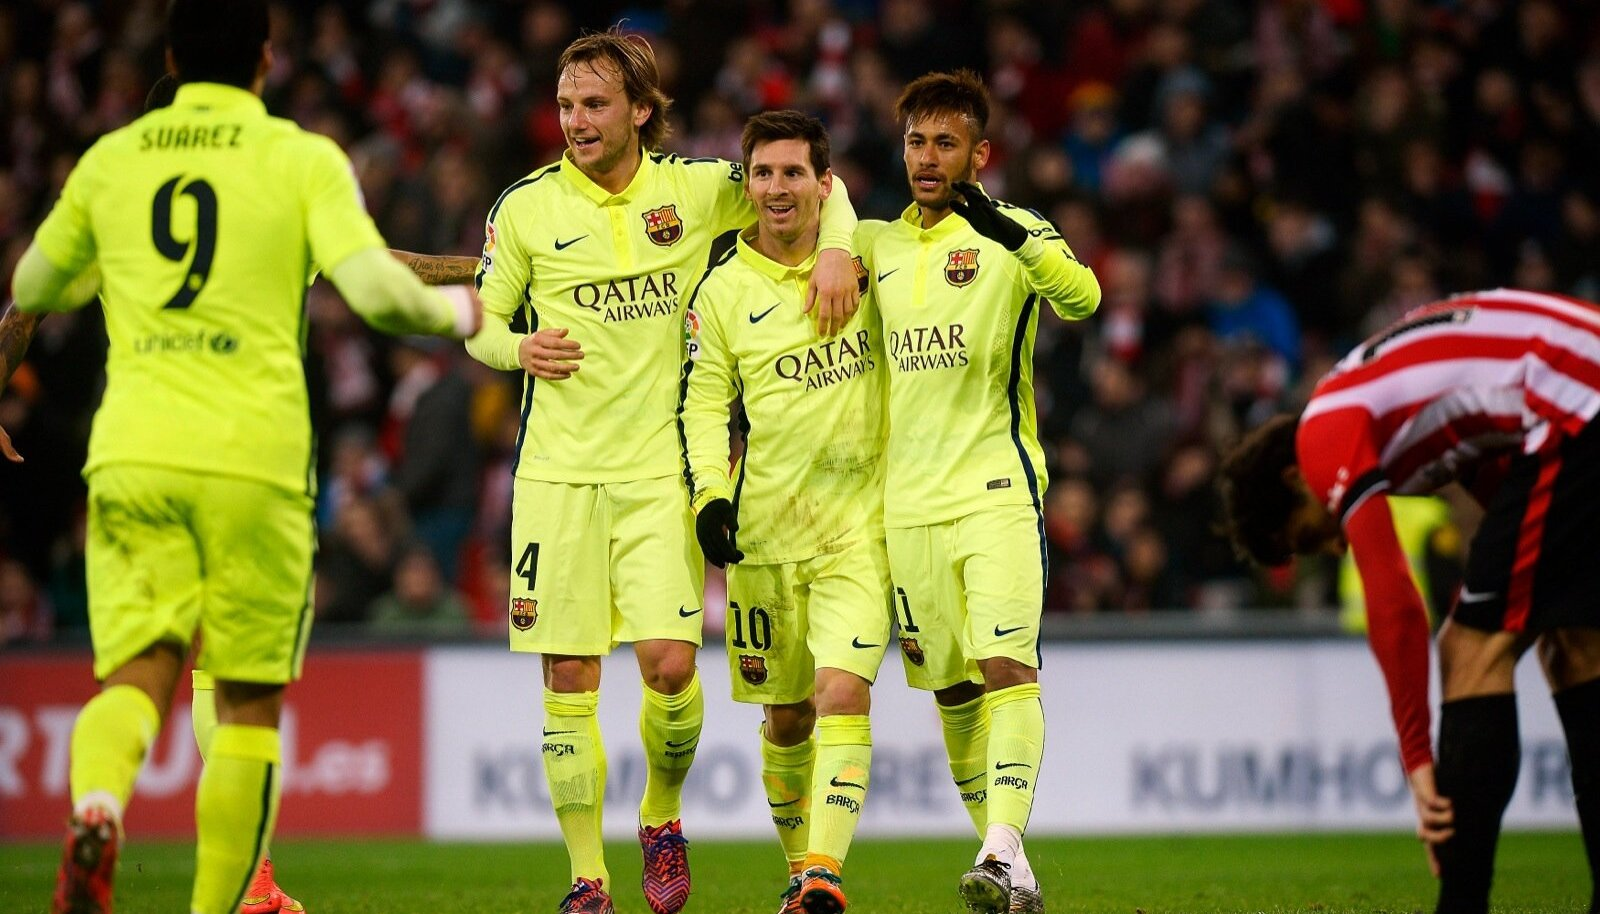 Barcelona's Suarez, Rakitic, Messi and Neymar celebrate a goal during their Spanish first division soccer match against Athletic Bilbao in Bilbao